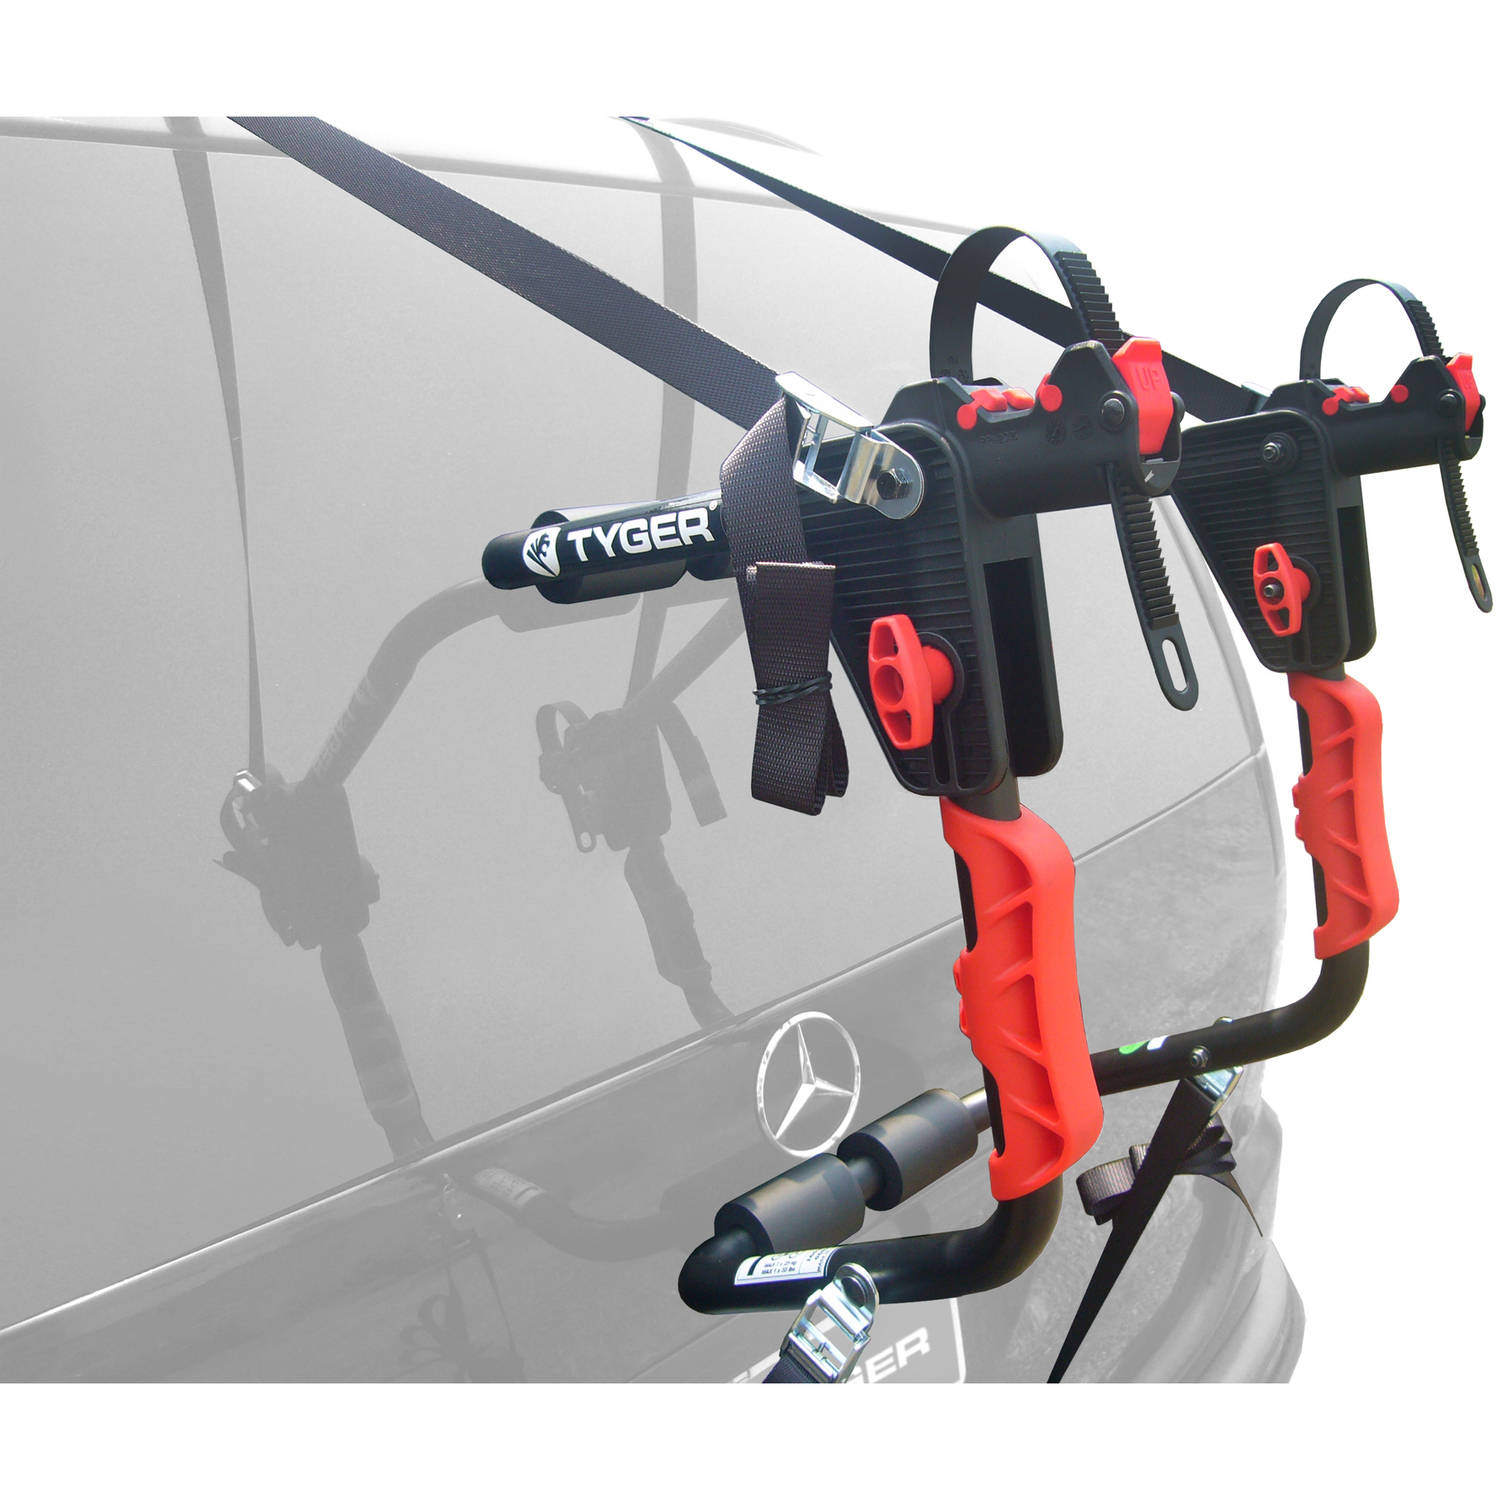 TYGER Deluxe Trunk Mount 1-Bike Carrier Rack for Sedan/Hatchback/SUV/Van, Black